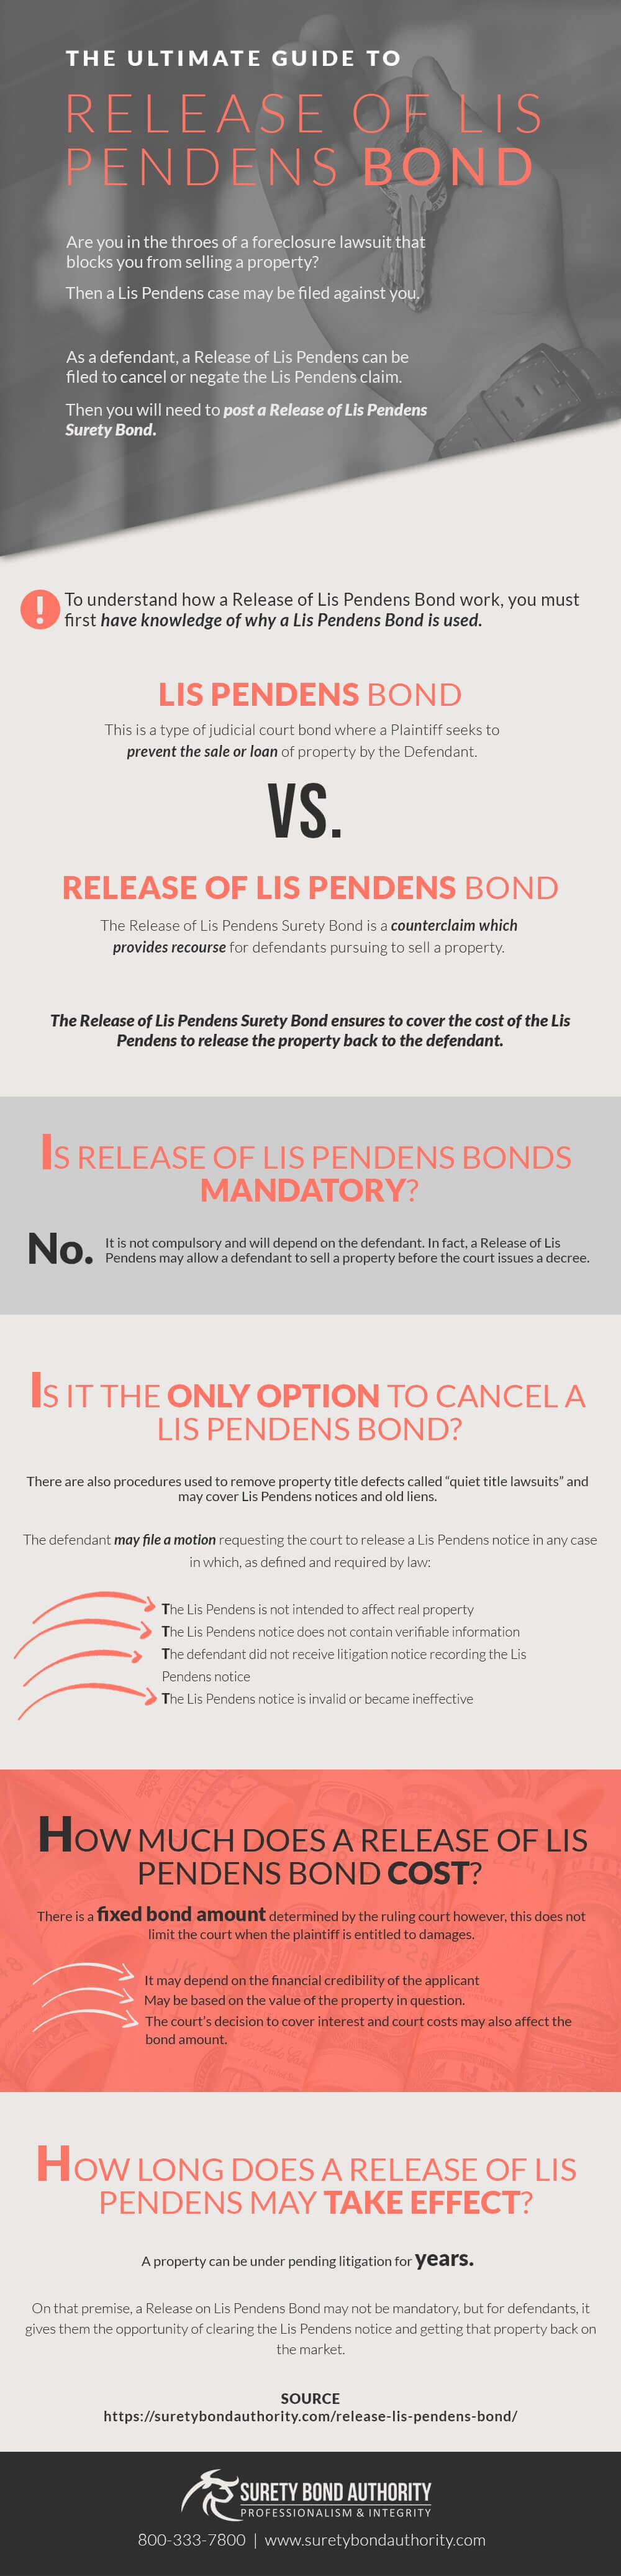 Release of Lis Pendens Bond Infographic